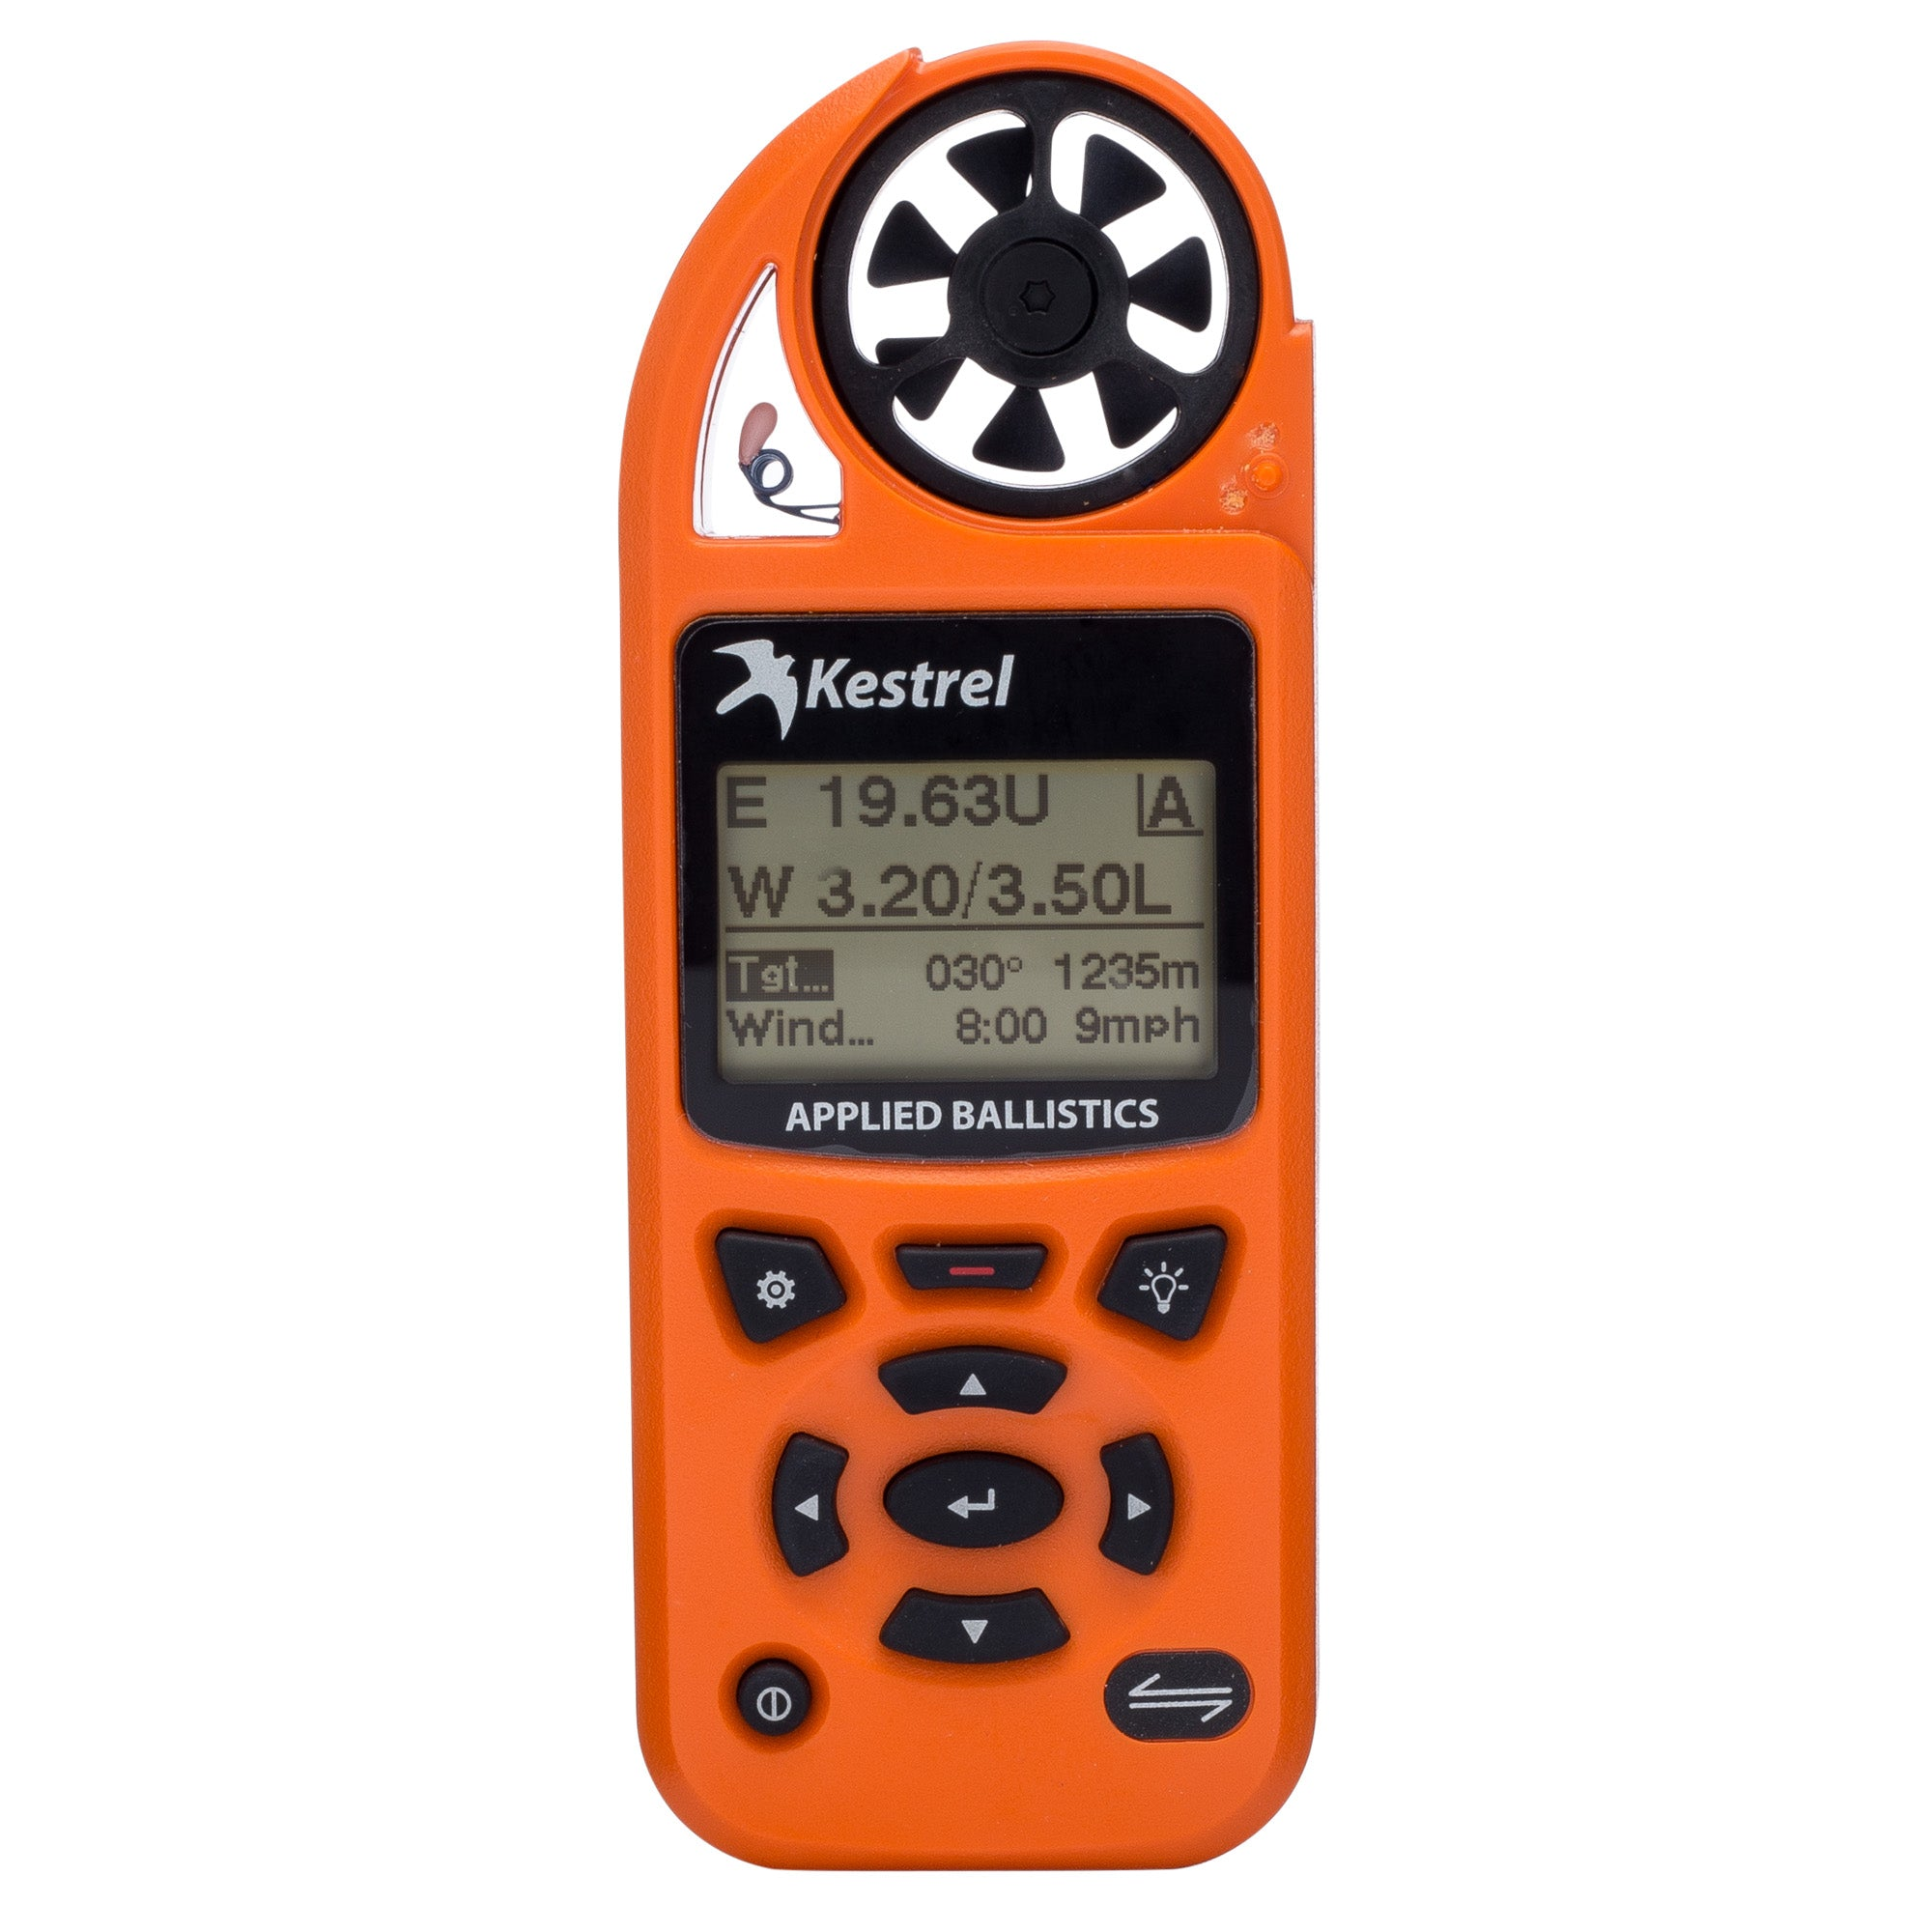 Kestrel 5700 Elite Hand Held Weather Meter with Applied Ballistics - A&J Sporting